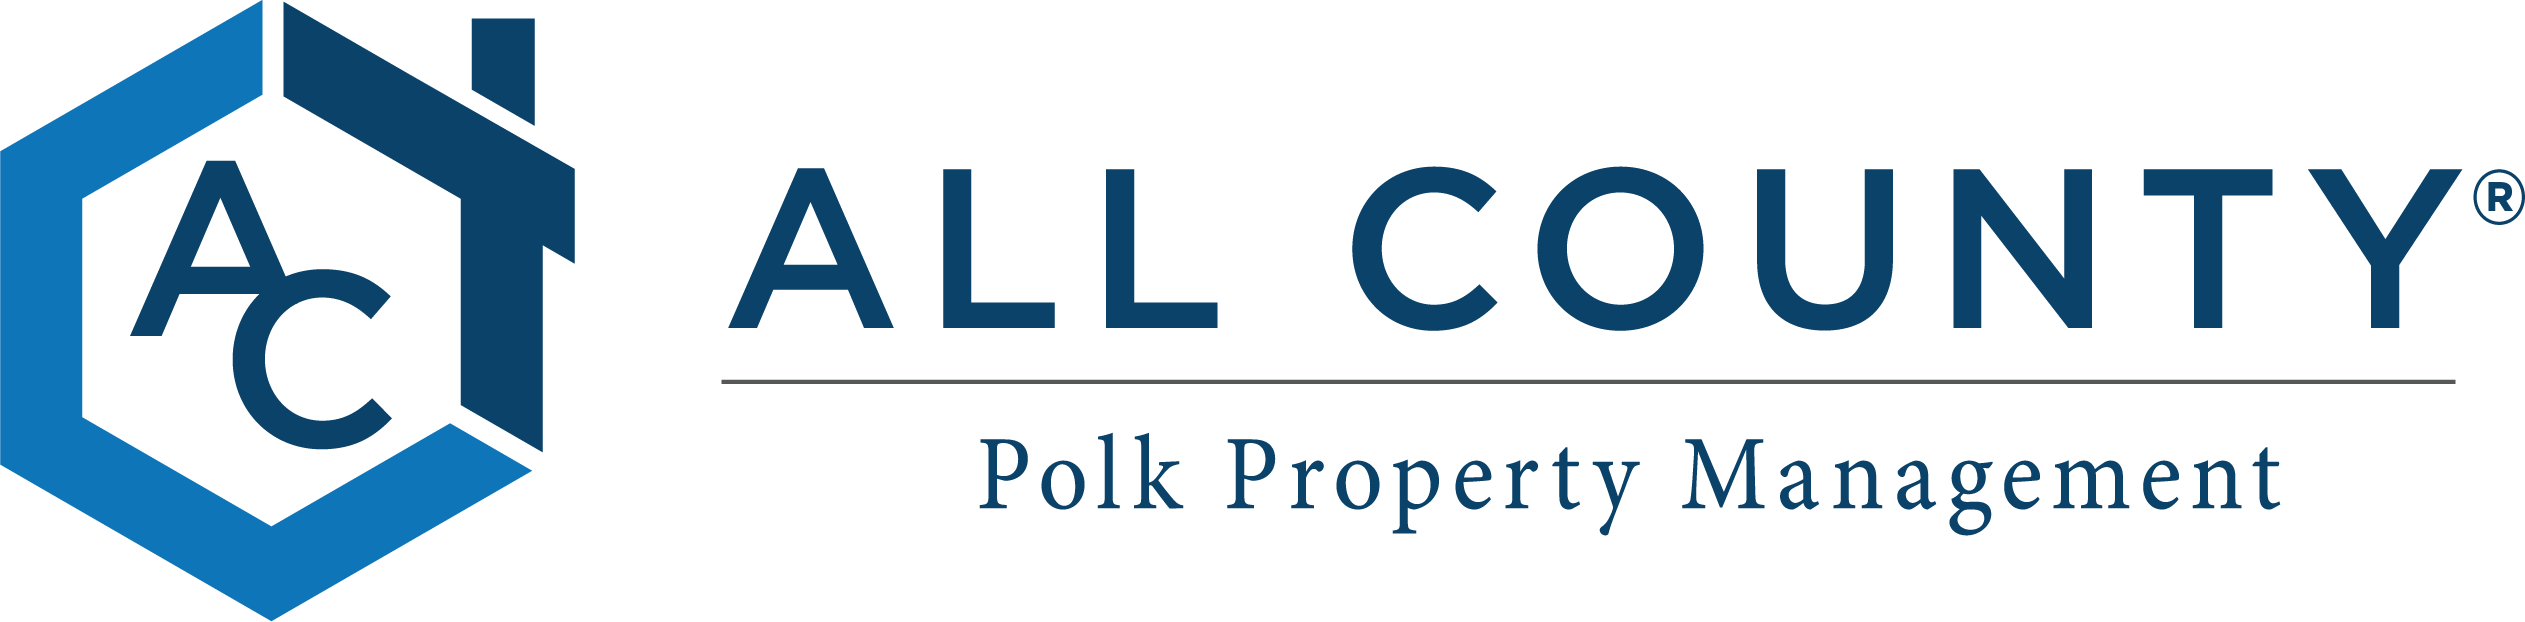 All County Polk Property Management